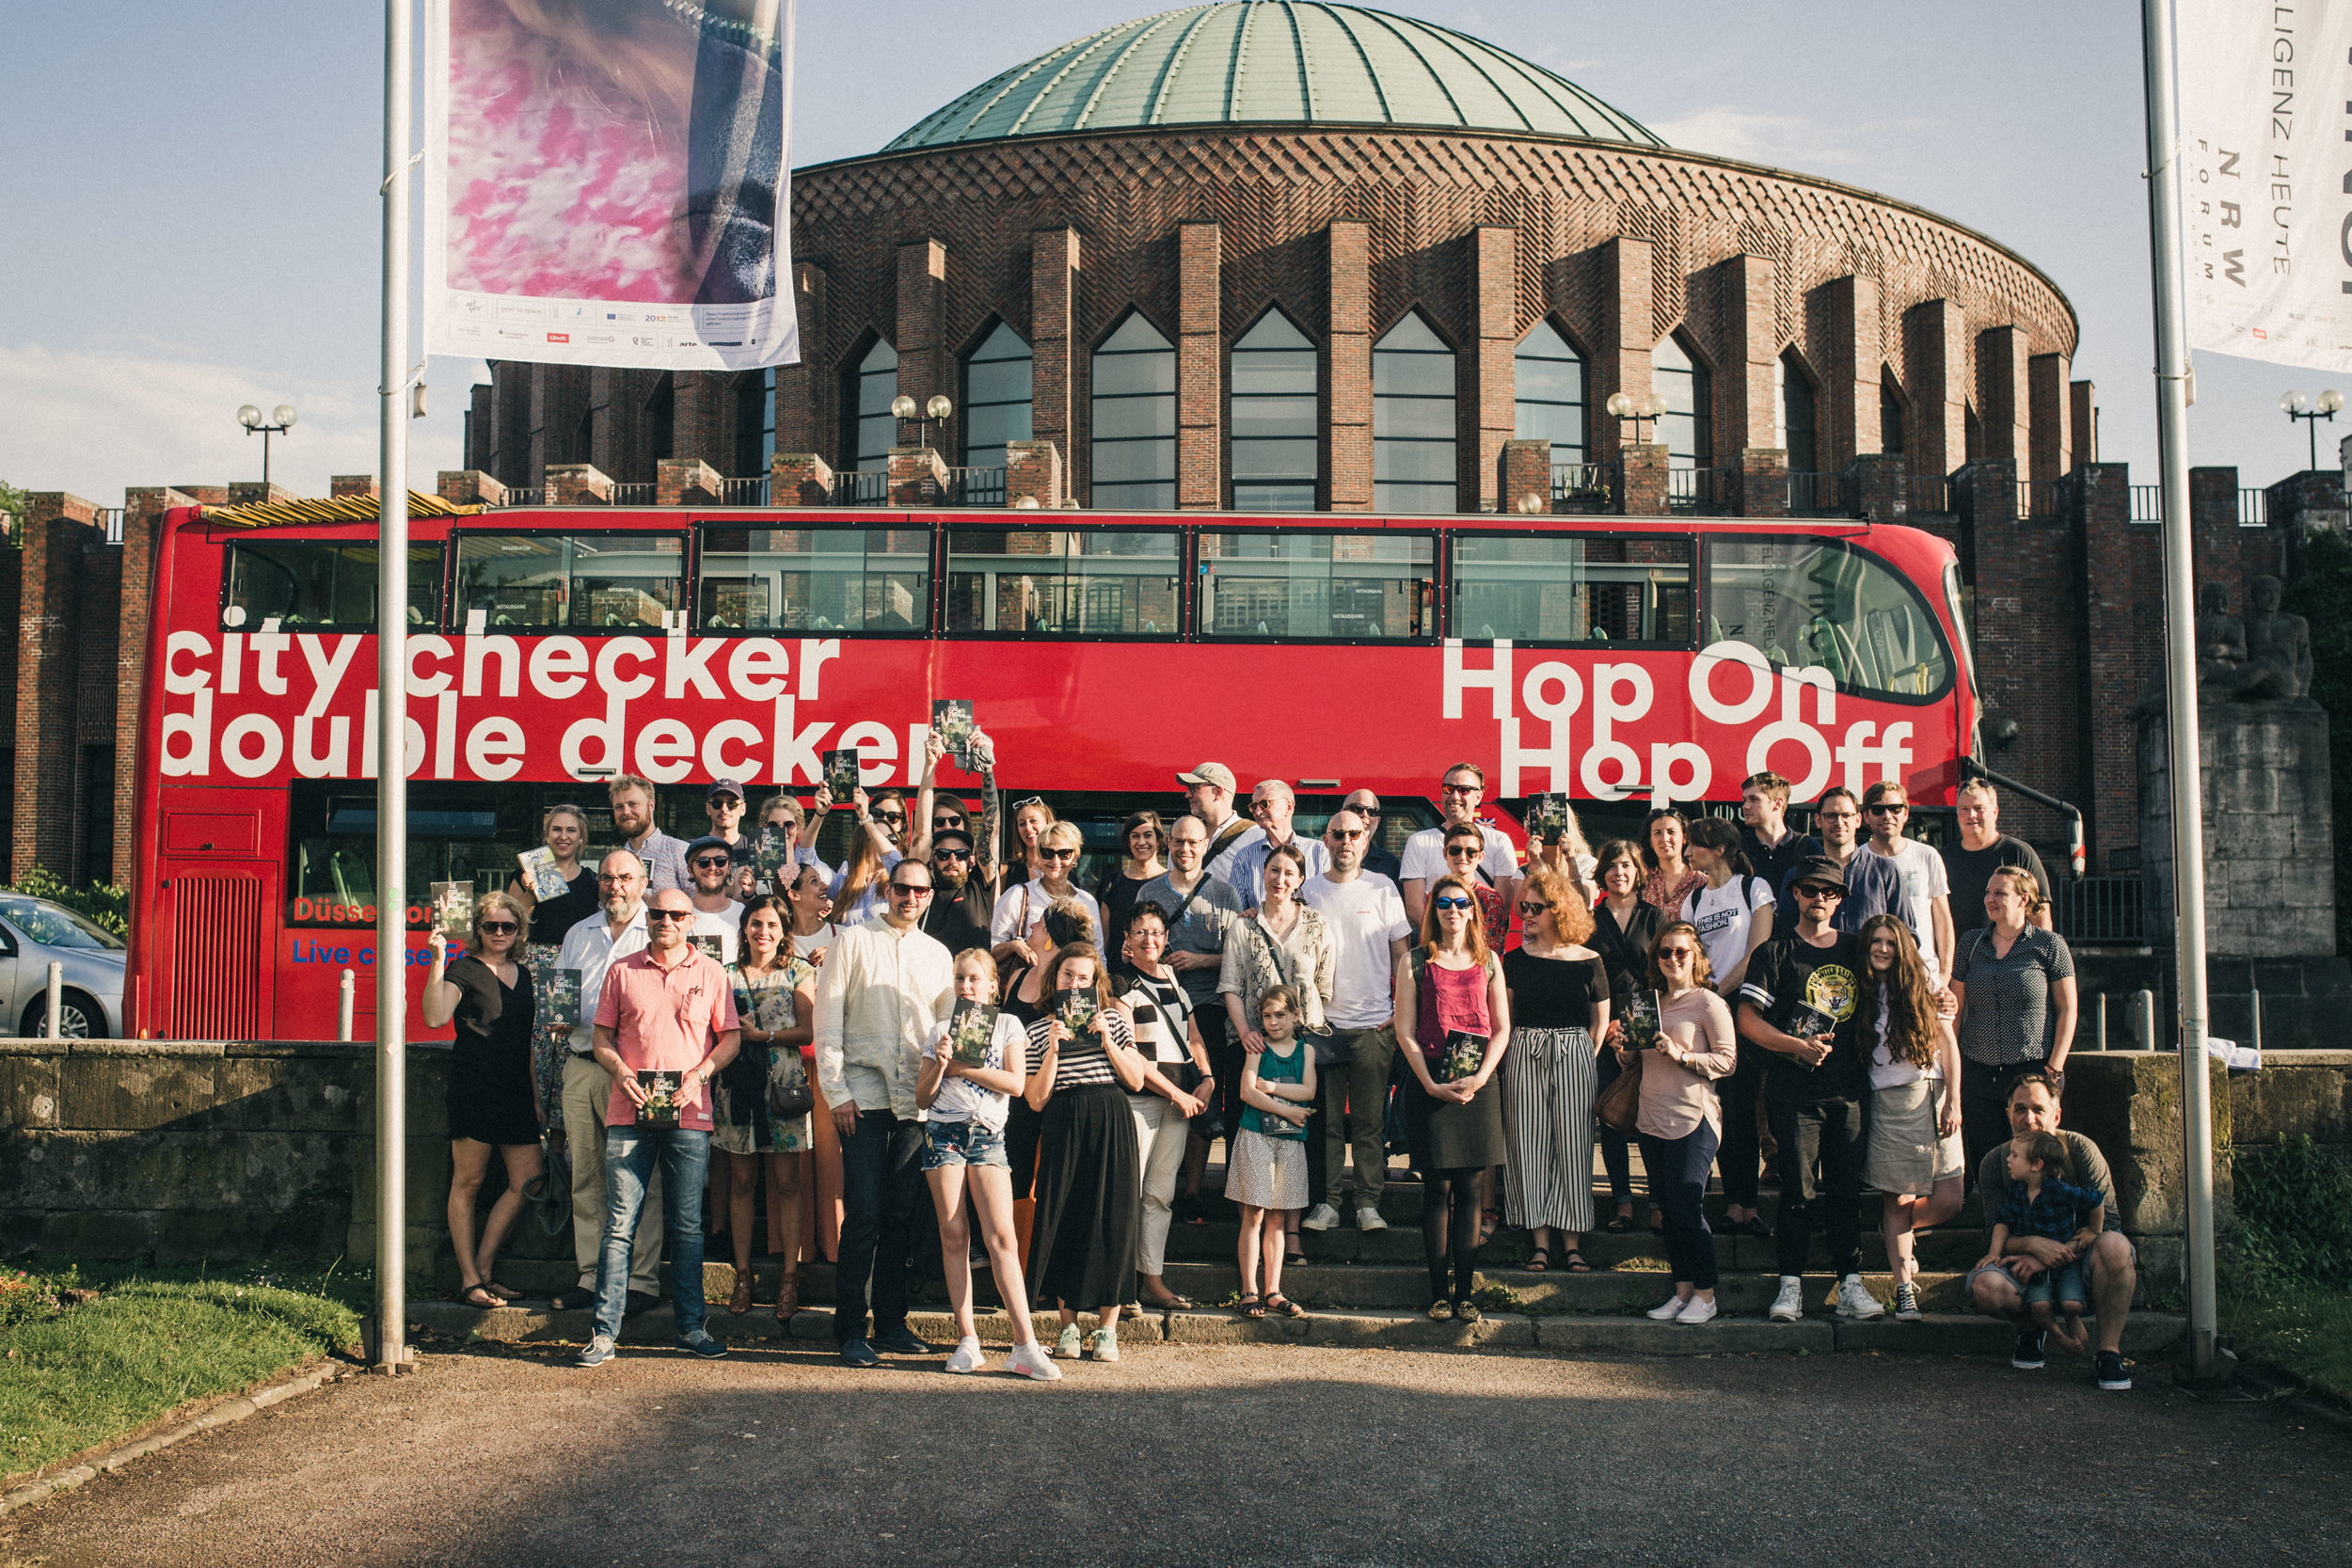 HopOn HopOff doubledecker bus at Ehrenhof in front of the Tonhalle Photo Credit: Kristina Fendesack / THE DORF